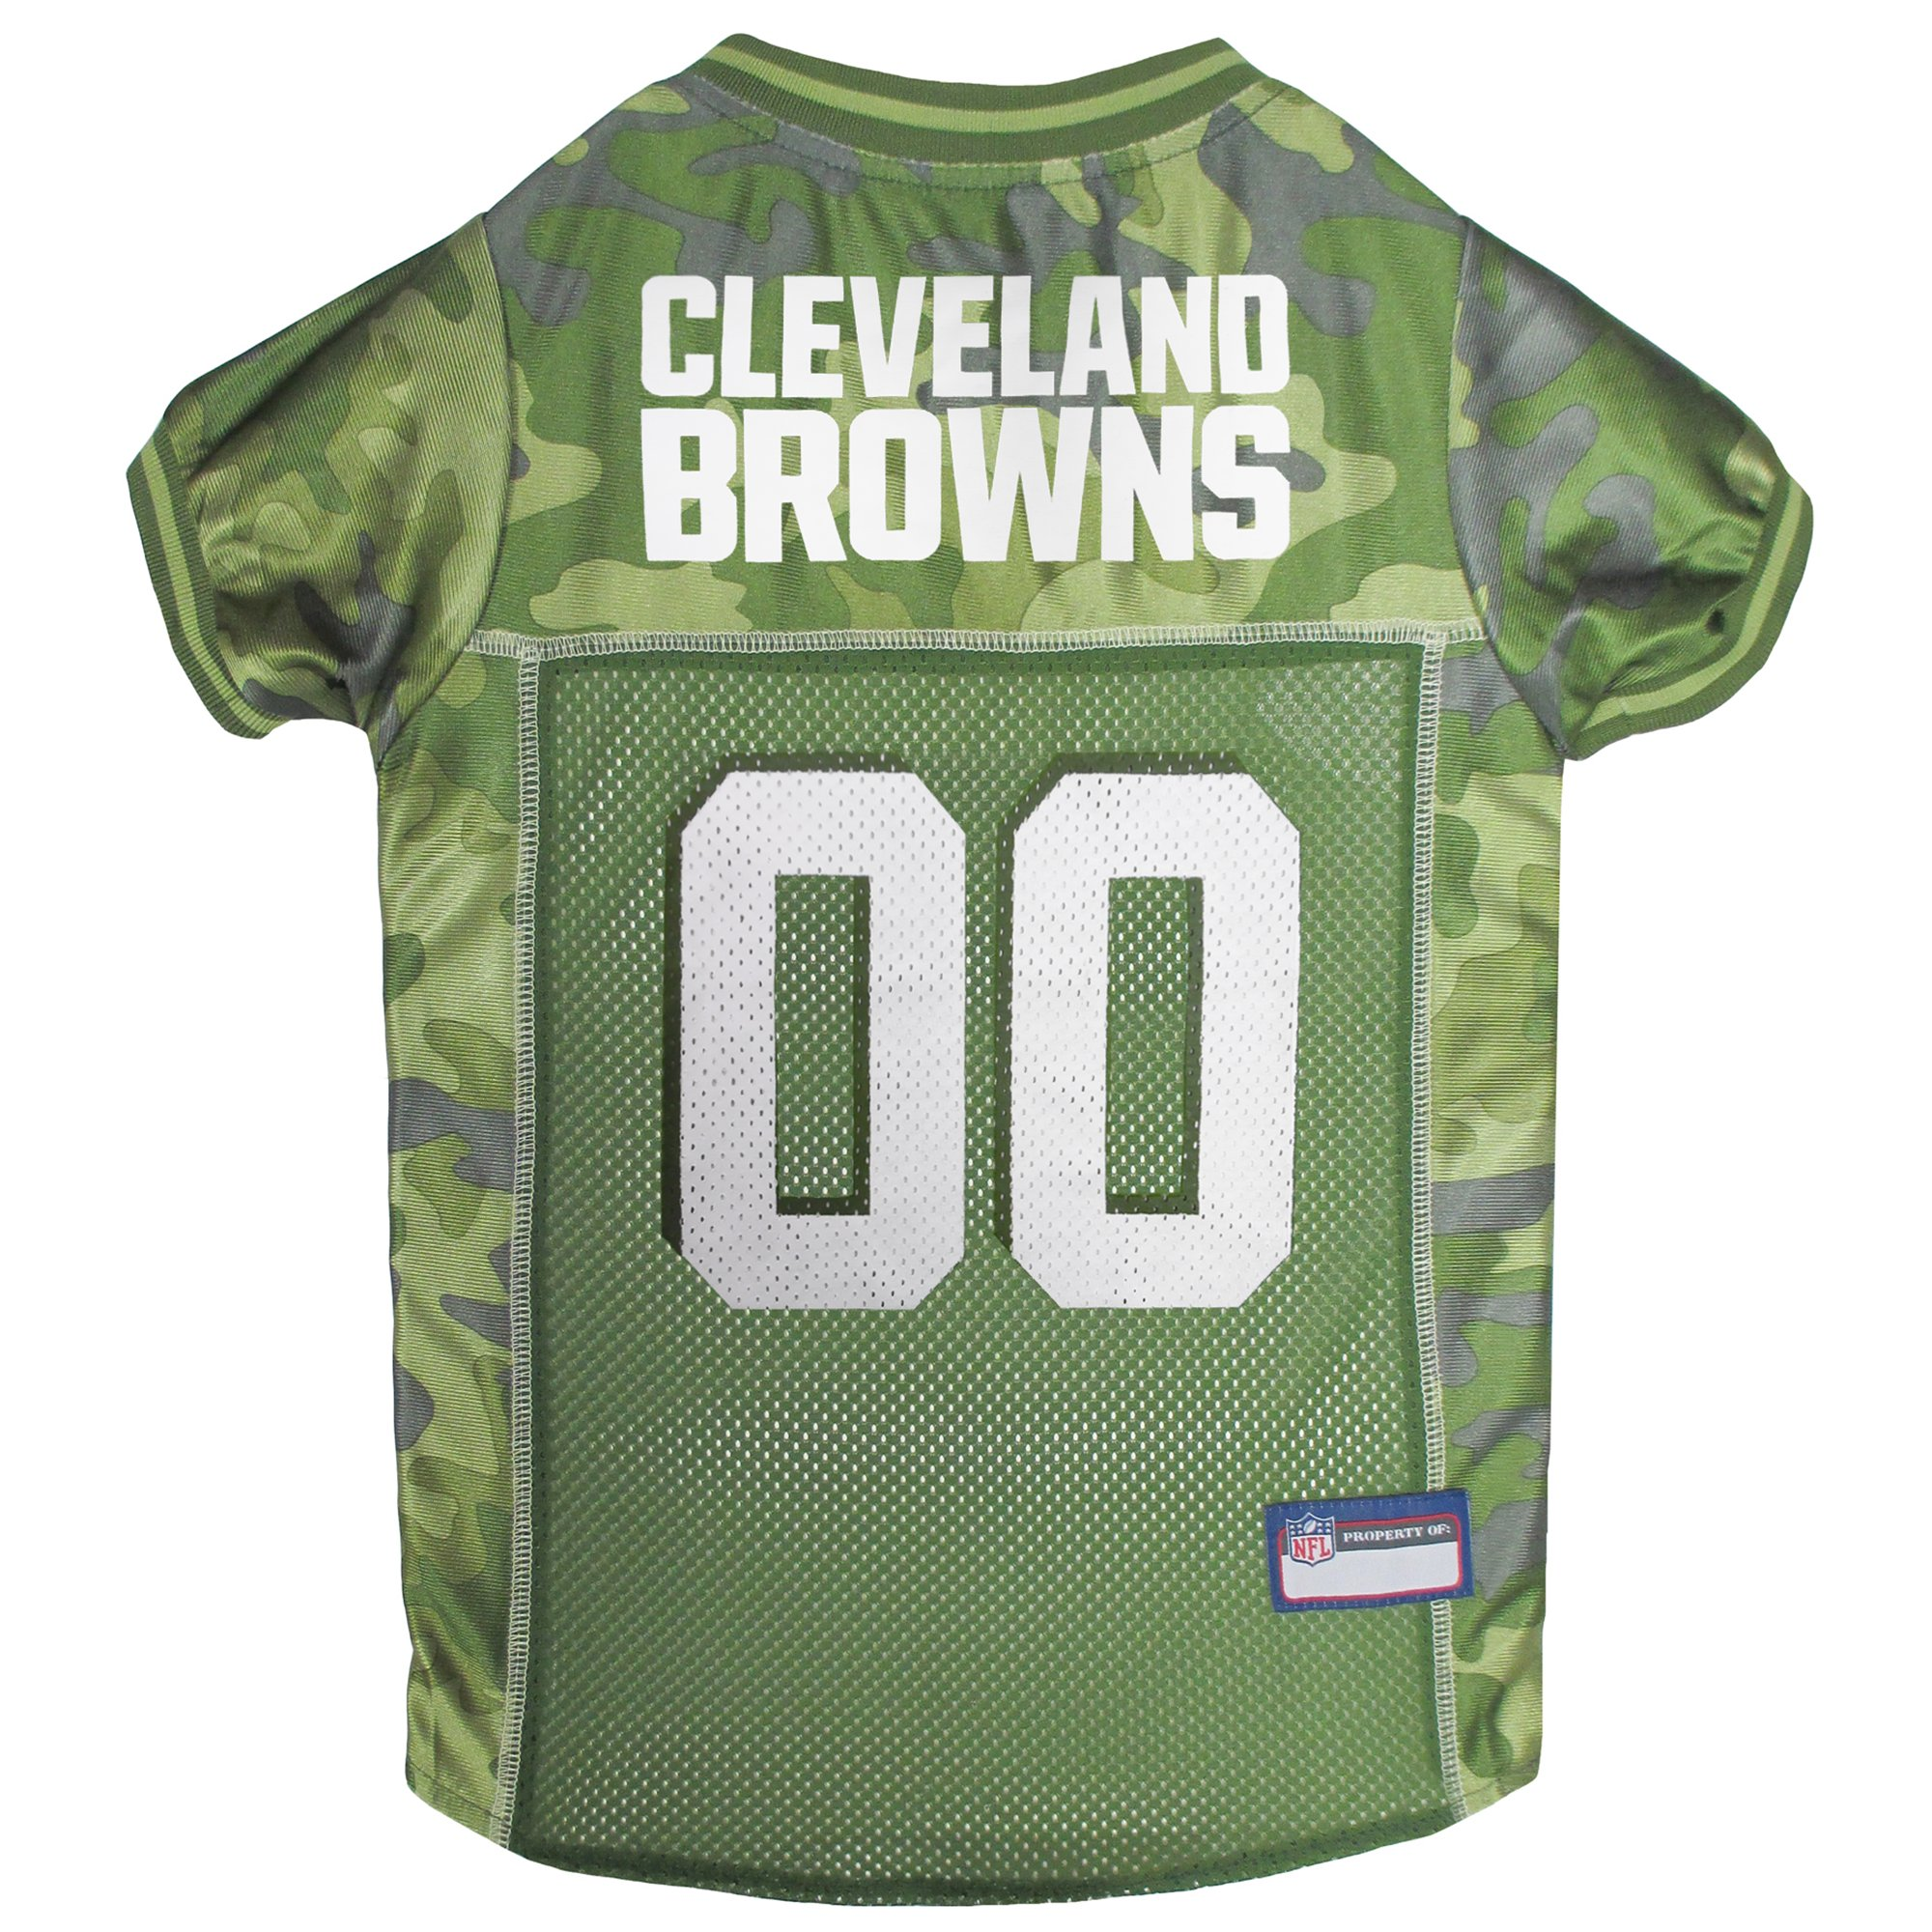 Image of Pets First Cleveland Browns Camo Jersey, Large, Green